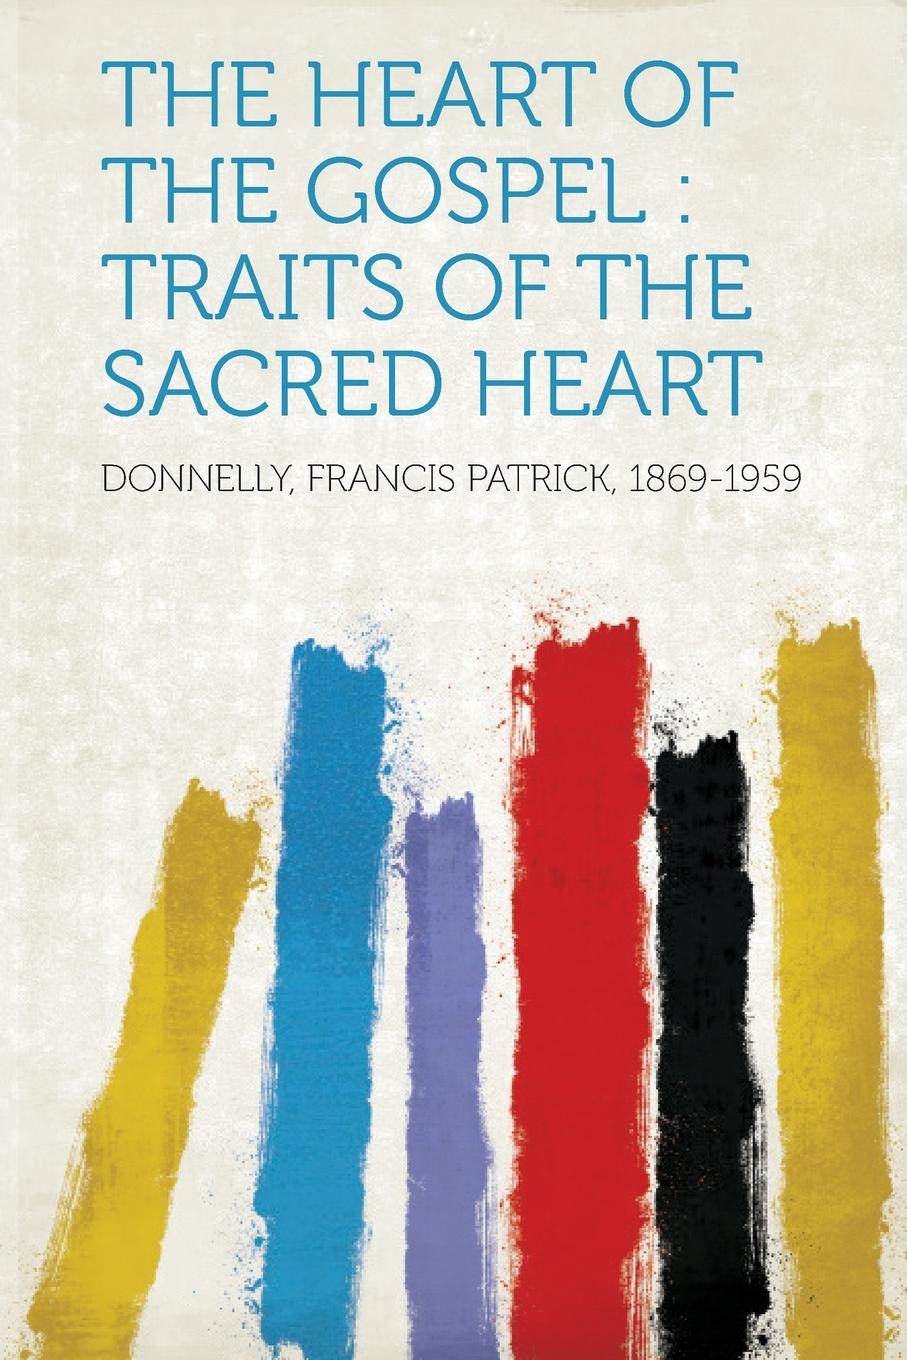 The Heart of the Gospel. Traits of the Sacred Heart